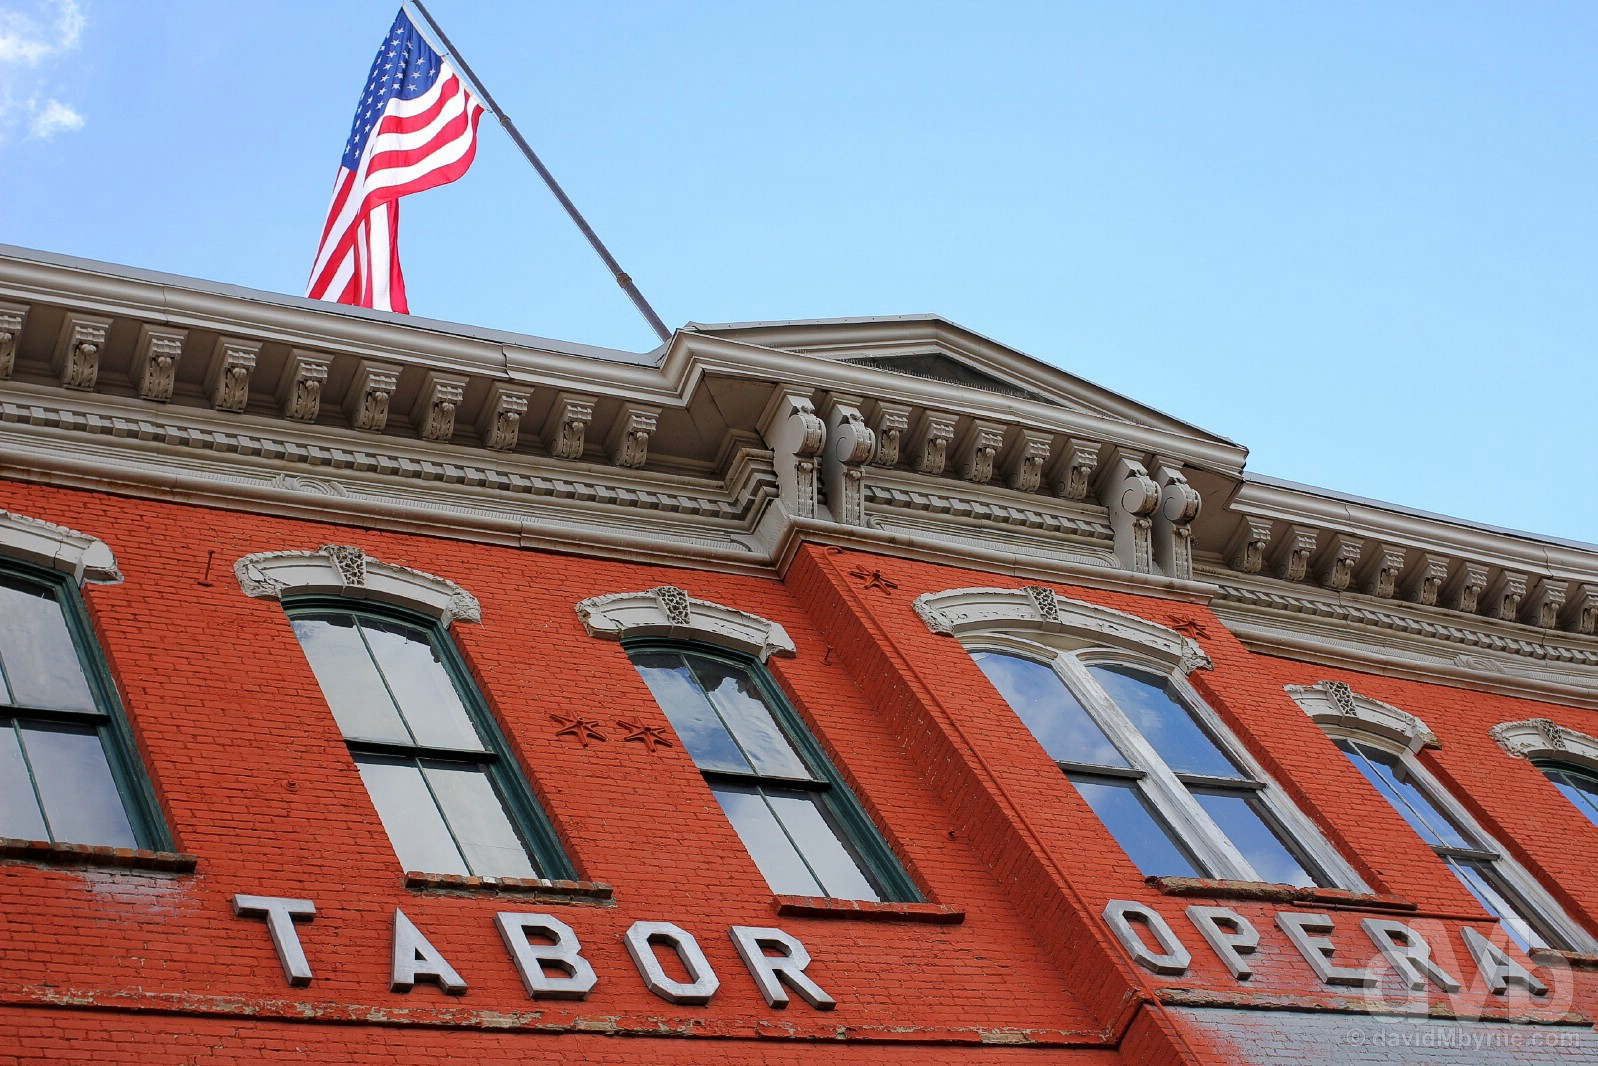 The Tabor Opera House, Harrison Avenue, Leadville, central Colorado, USA. September 13, 2016.